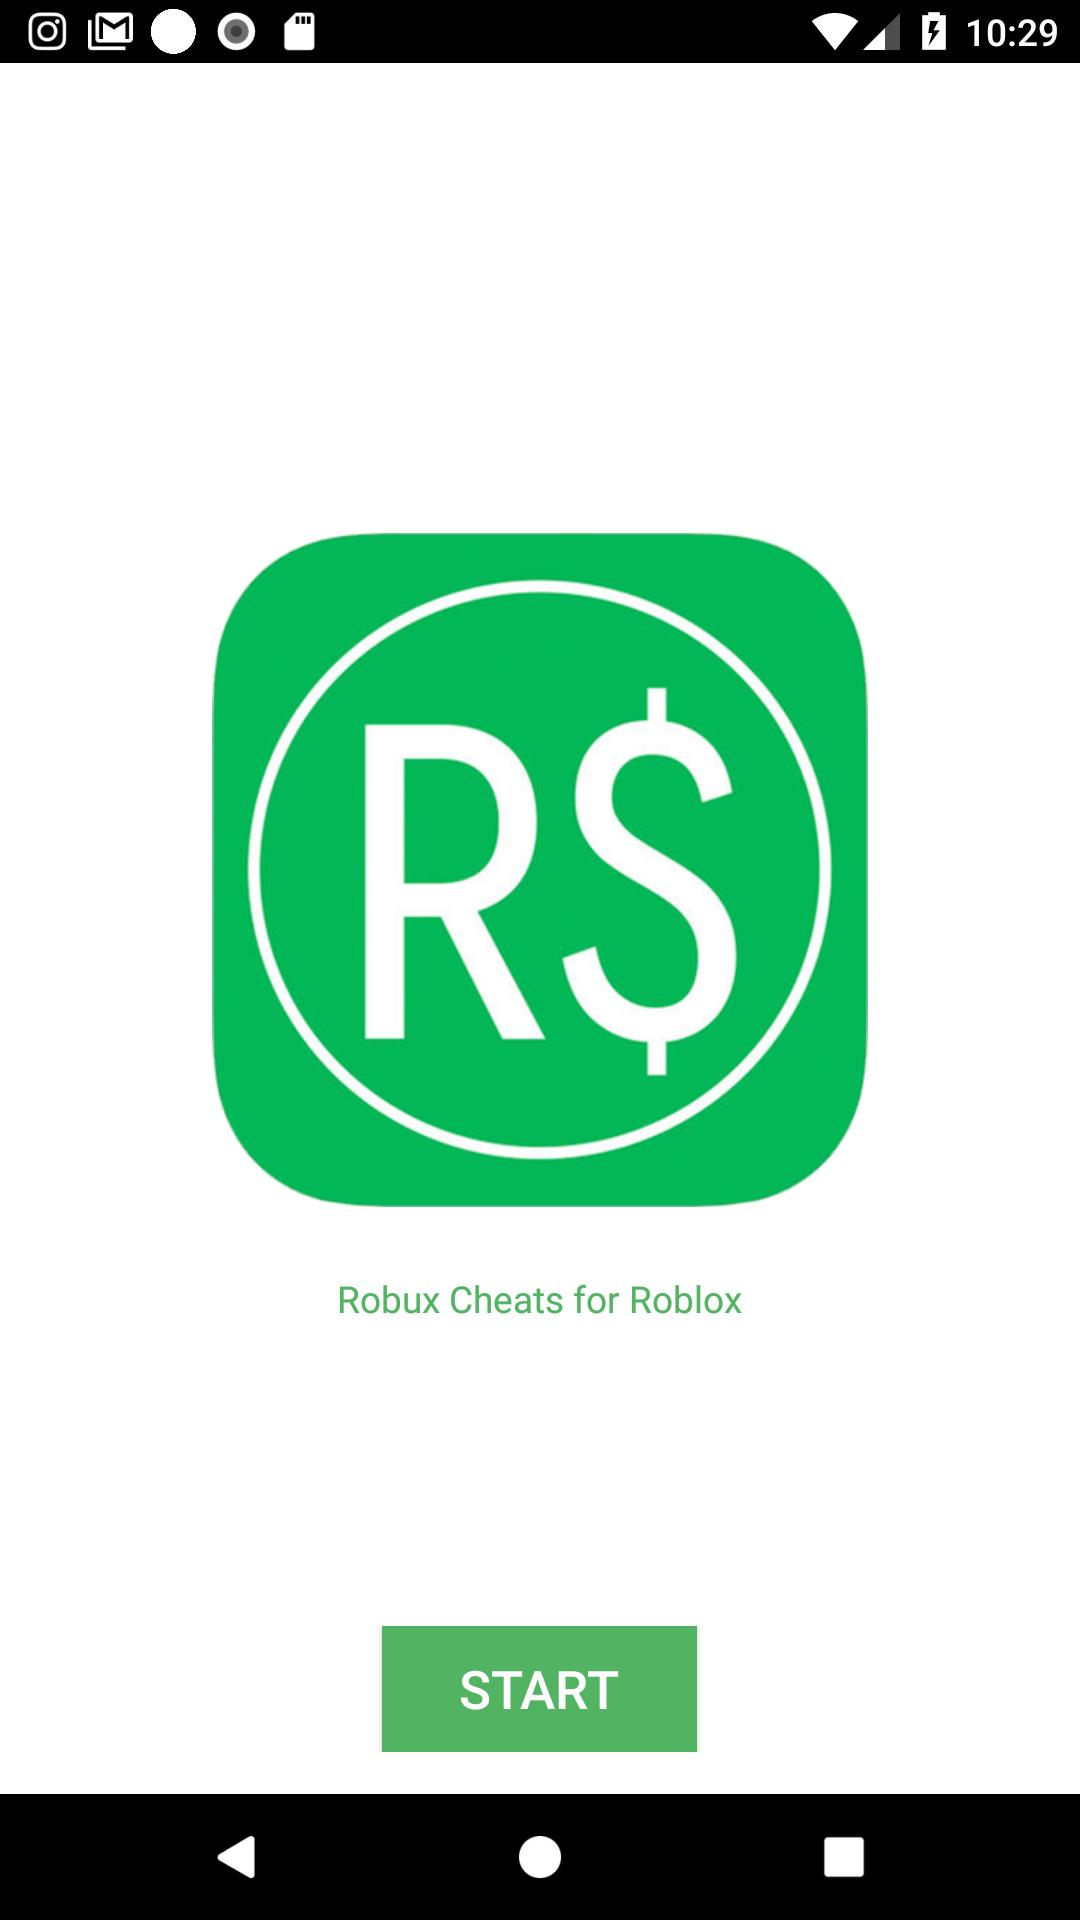 C Logo Roblox - Free Robux For Roblox Cookie Swirl C Roblox For Android Apk